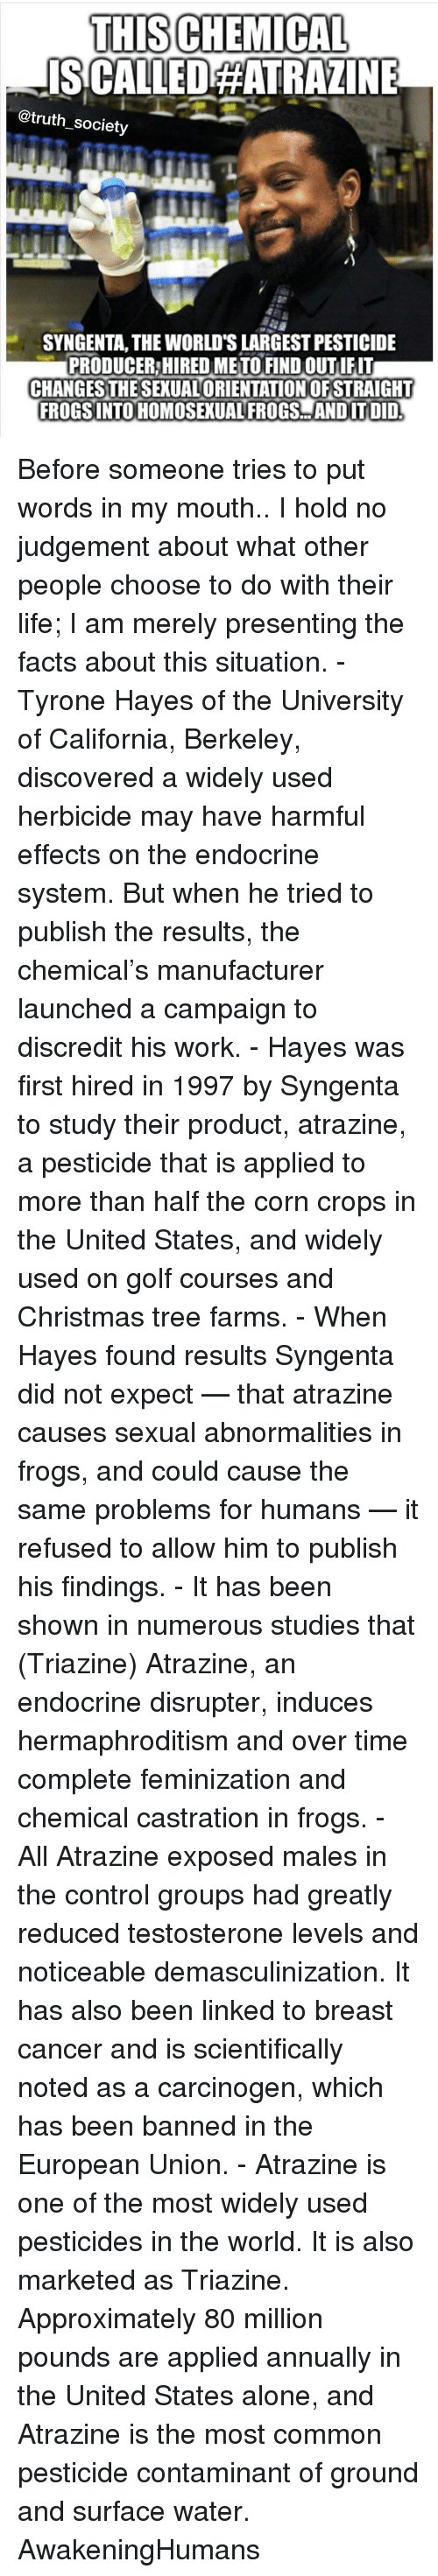 syngenta: THISCHEMICAL  ISCALLEDAATRAZINE  @truth society  SYNGENTA, THE WORLDSLARGEST PESTICIDE  PRODUCER HIREDMETO FIND OUTIFIT  CHANGES THESEXUALORIENTATIONOFSTRAIGHT  FROGSINTOHOMOSEXUAL FROGS AND IT DID Before someone tries to put words in my mouth.. I hold no judgement about what other people choose to do with their life; I am merely presenting the facts about this situation. - Tyrone Hayes of the University of California, Berkeley, discovered a widely used herbicide may have harmful effects on the endocrine system. But when he tried to publish the results, the chemical's manufacturer launched a campaign to discredit his work. - Hayes was first hired in 1997 by Syngenta to study their product, atrazine, a pesticide that is applied to more than half the corn crops in the United States, and widely used on golf courses and Christmas tree farms. - When Hayes found results Syngenta did not expect — that atrazine causes sexual abnormalities in frogs, and could cause the same problems for humans — it refused to allow him to publish his findings. - It has been shown in numerous studies that (Triazine) Atrazine, an endocrine disrupter, induces hermaphroditism and over time complete feminization and chemical castration in frogs. - All Atrazine exposed males in the control groups had greatly reduced testosterone levels and noticeable demasculinization. It has also been linked to breast cancer and is scientifically noted as a carcinogen, which has been banned in the European Union. - Atrazine is one of the most widely used pesticides in the world. It is also marketed as Triazine. Approximately 80 million pounds are applied annually in the United States alone, and Atrazine is the most common pesticide contaminant of ground and surface water. AwakeningHumans